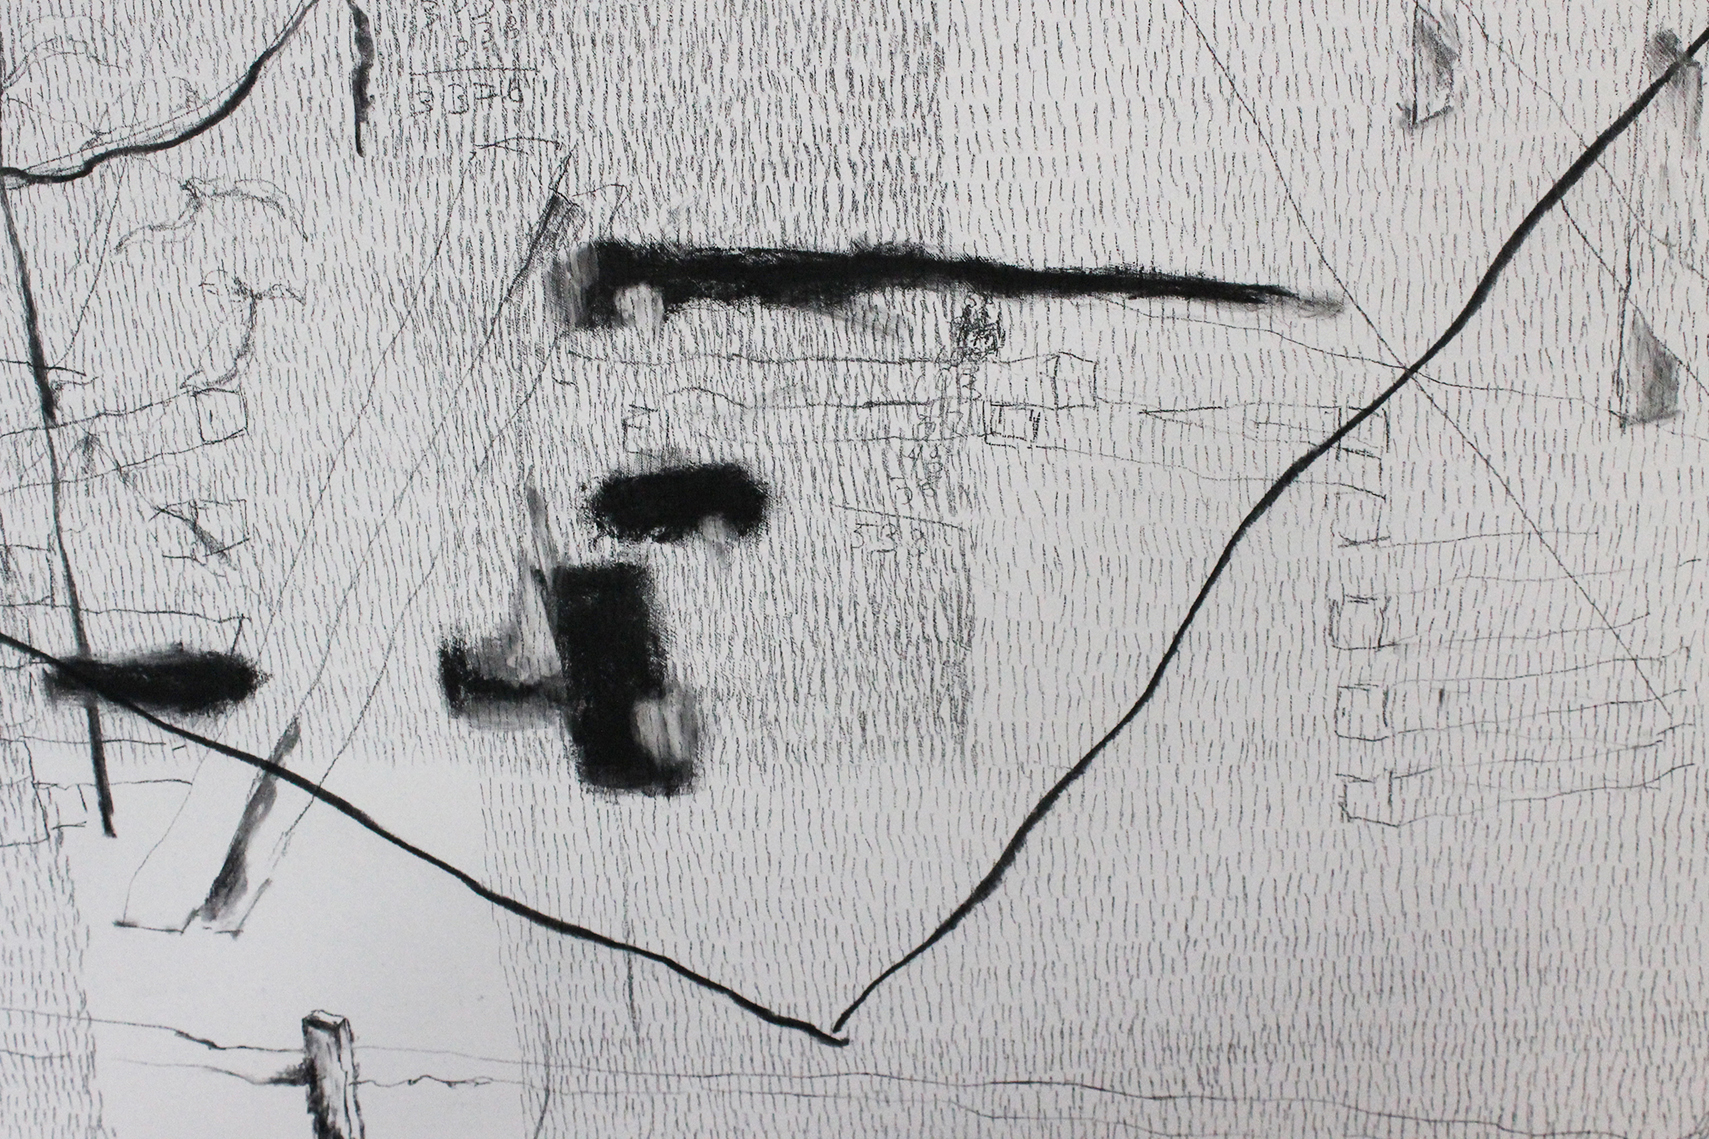 """37,702 Steps to the Cutlers (NYC and East Hampton) (detail) Charcoal and graphite on wood, 62"""" x 48"""", 2011-2012"""